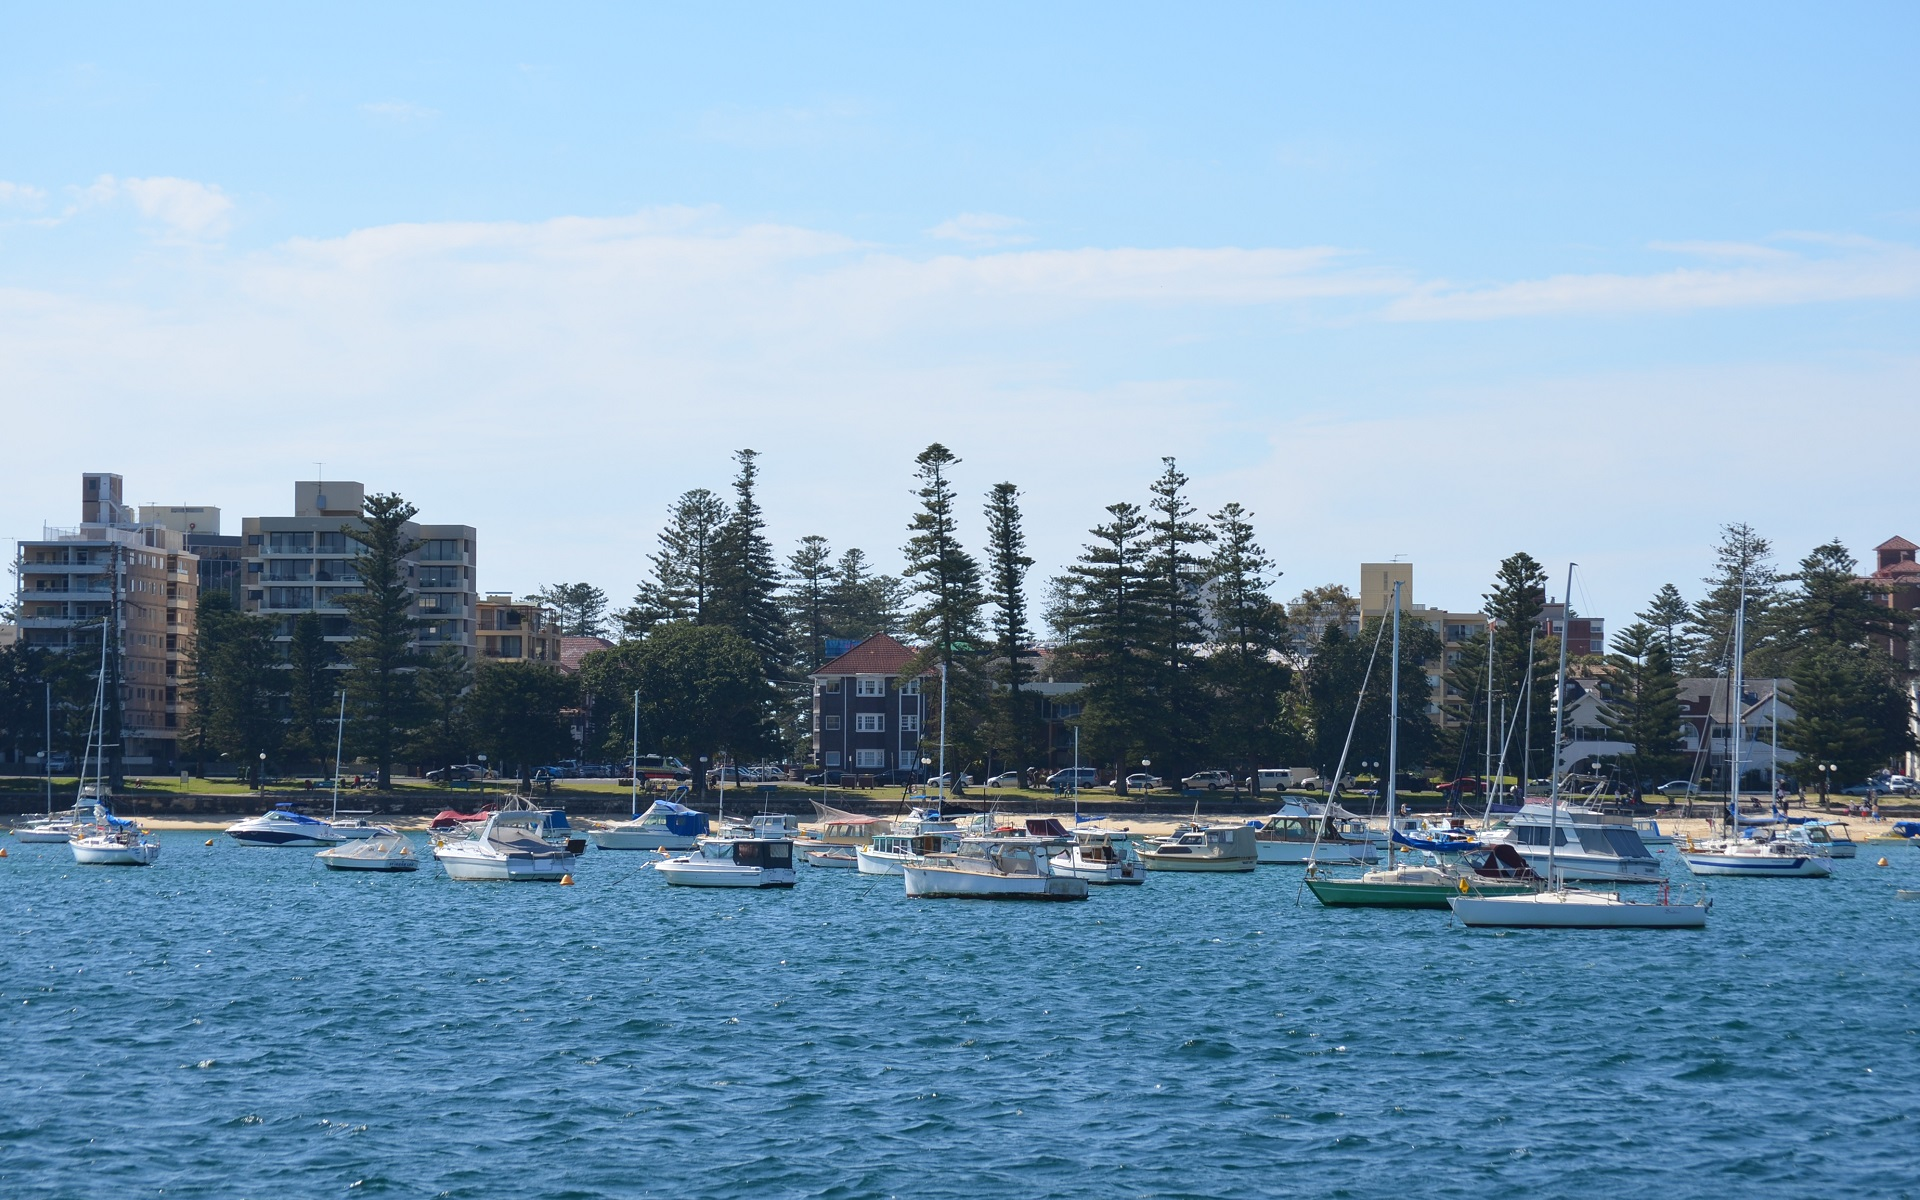 manly sydney australia full hd wallpaper and background